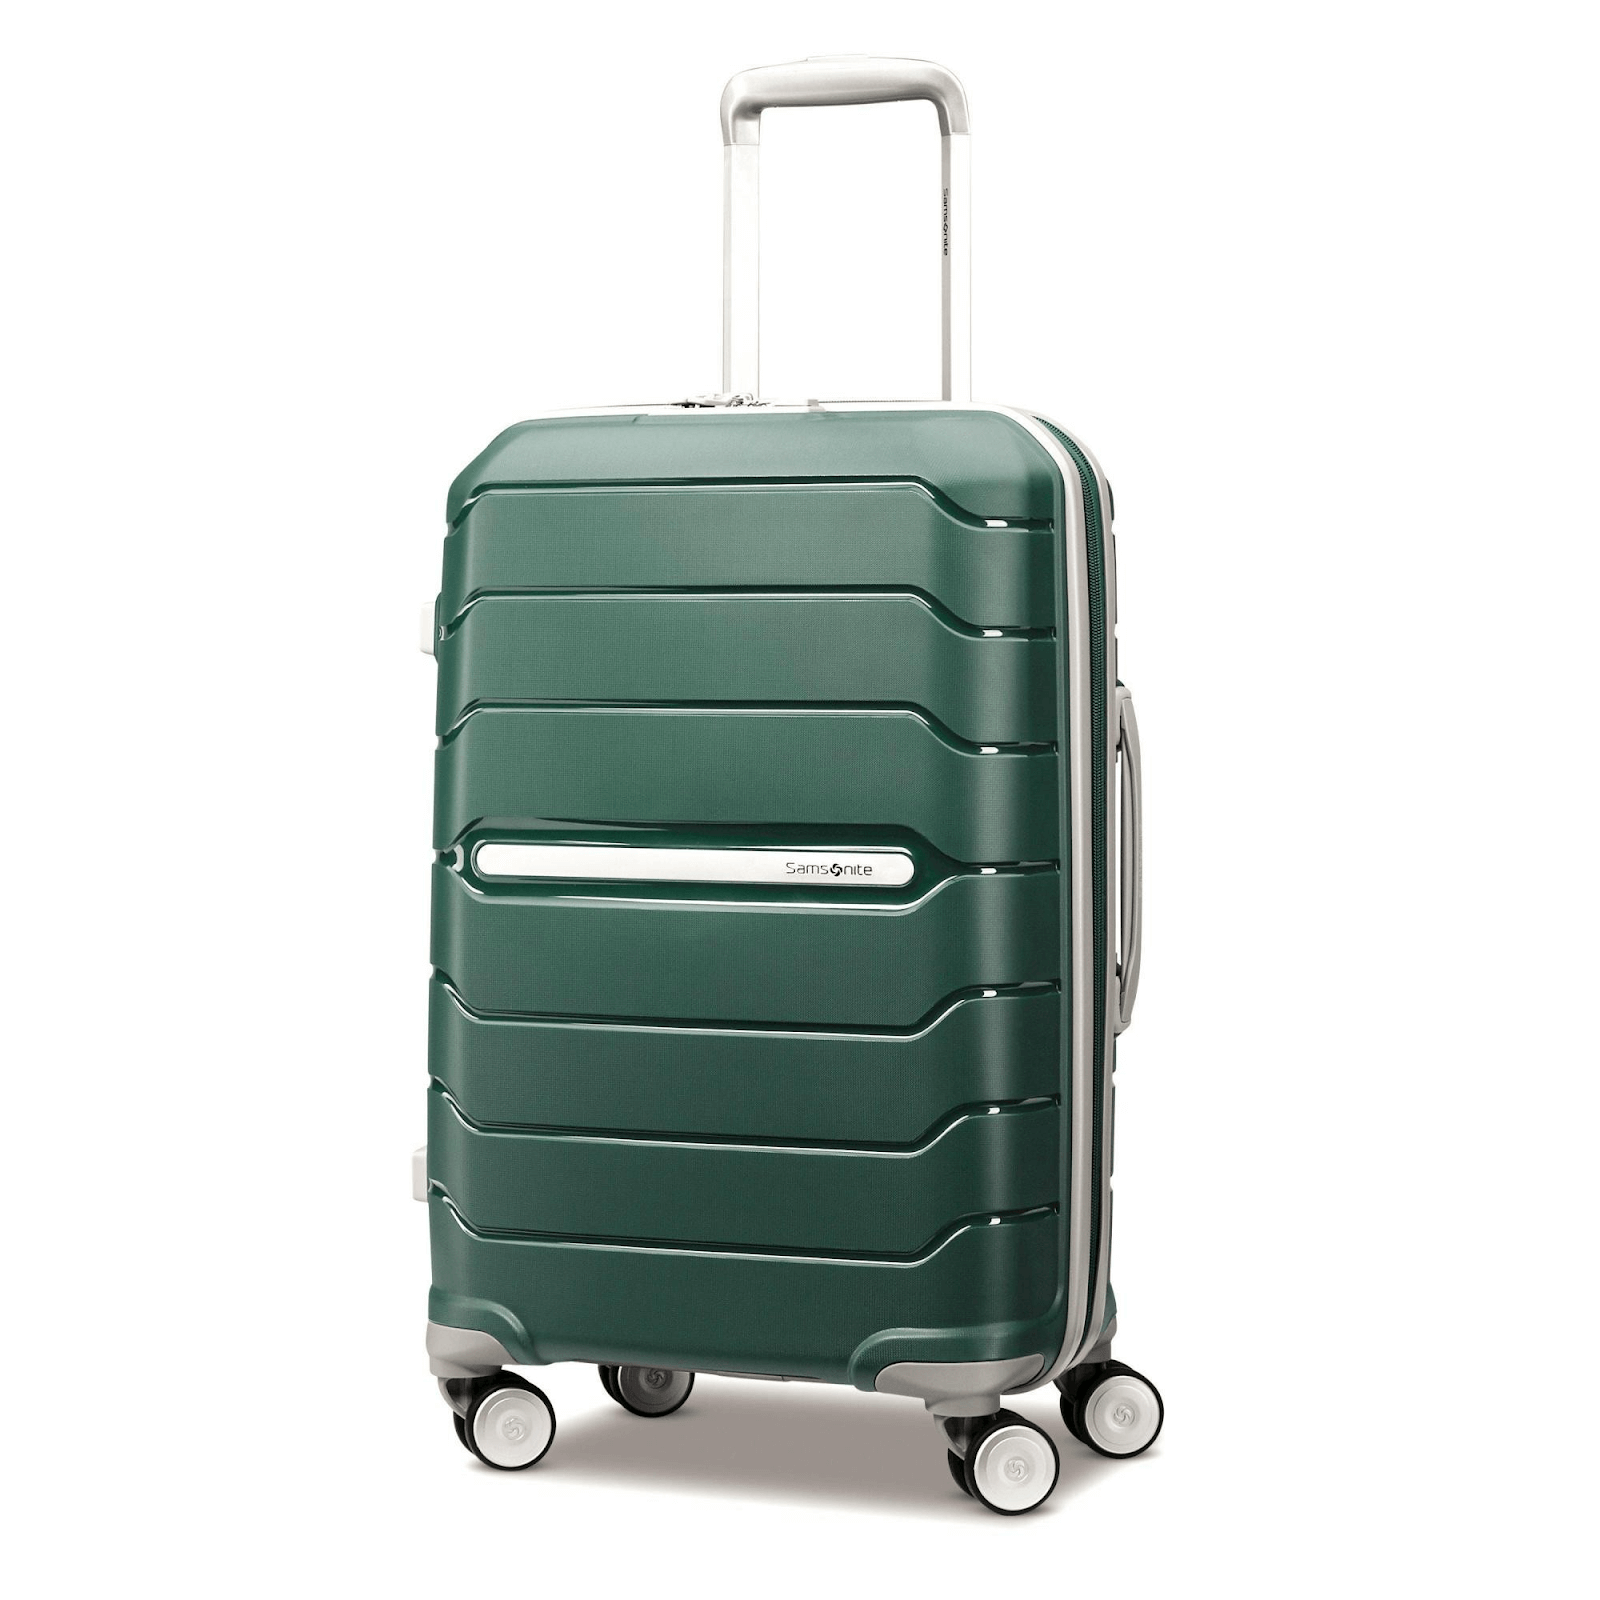 "Samsonite Freeform Spinner 21"" Bag"